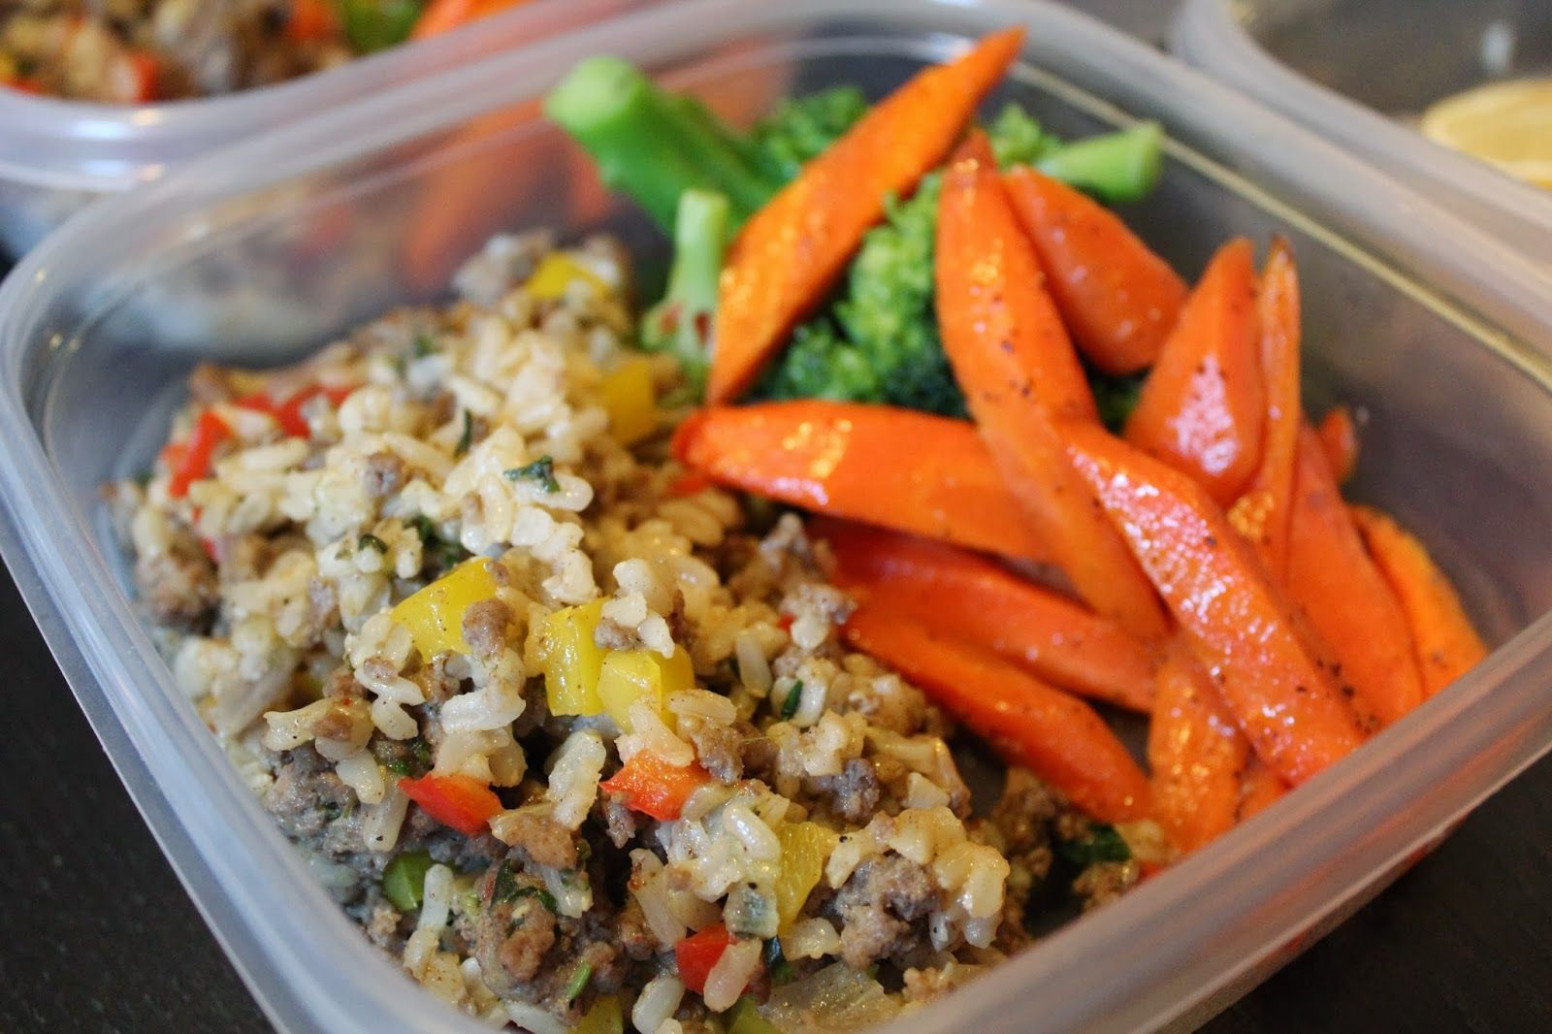 Dirty rice recipe from jessica! Expert Tips for Easy ...